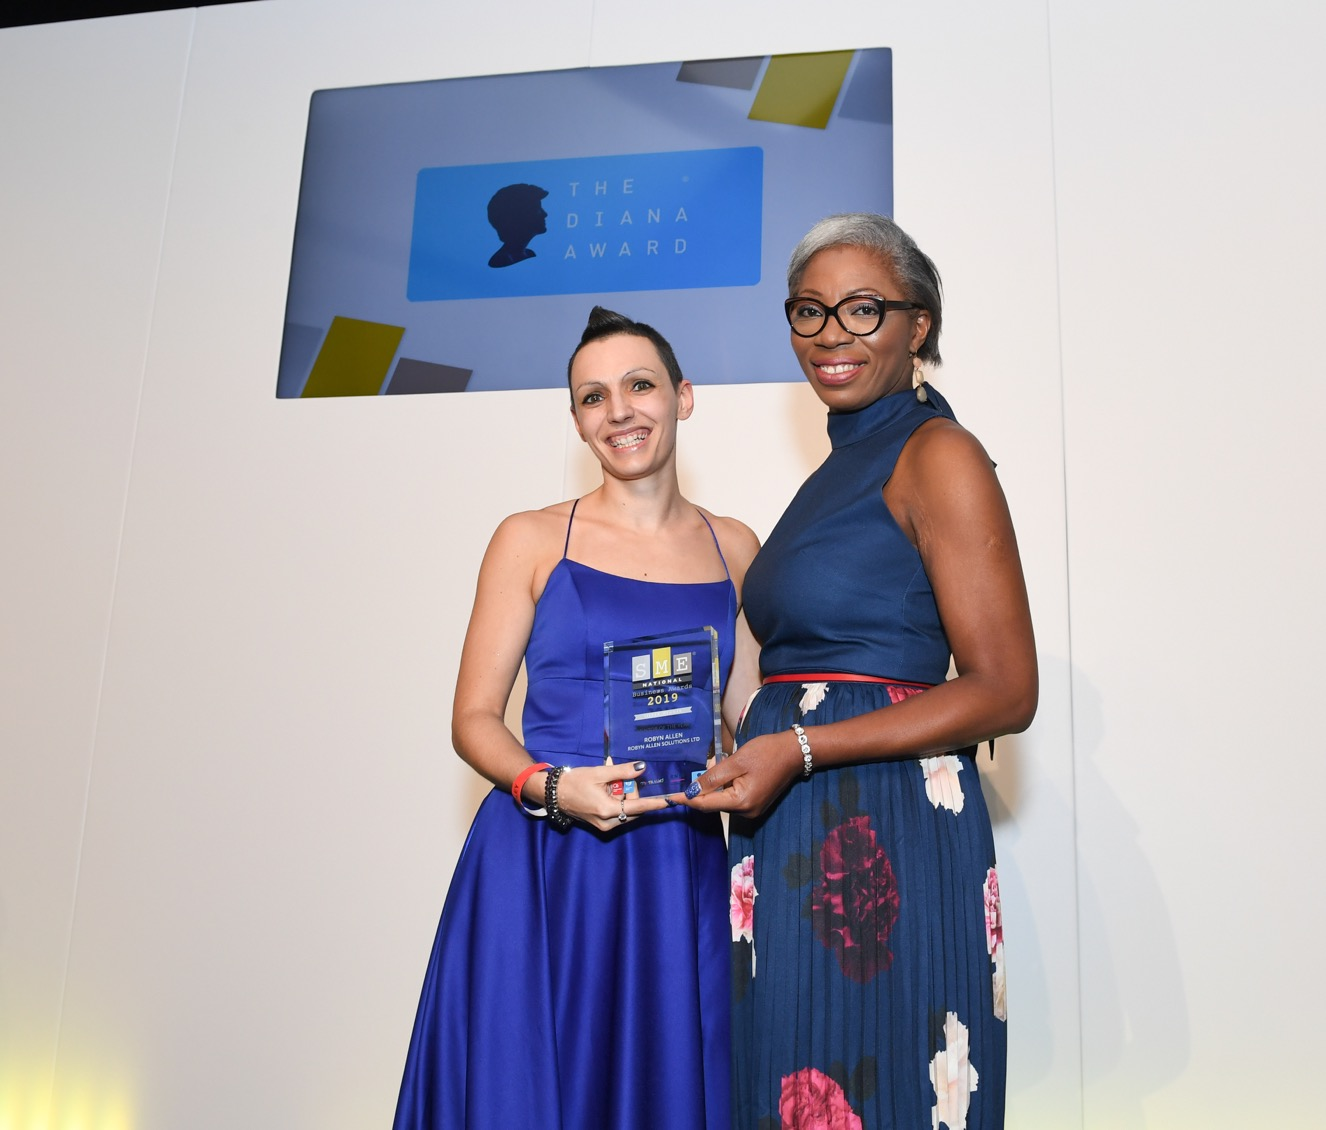 Insurance broker celebrates national award success